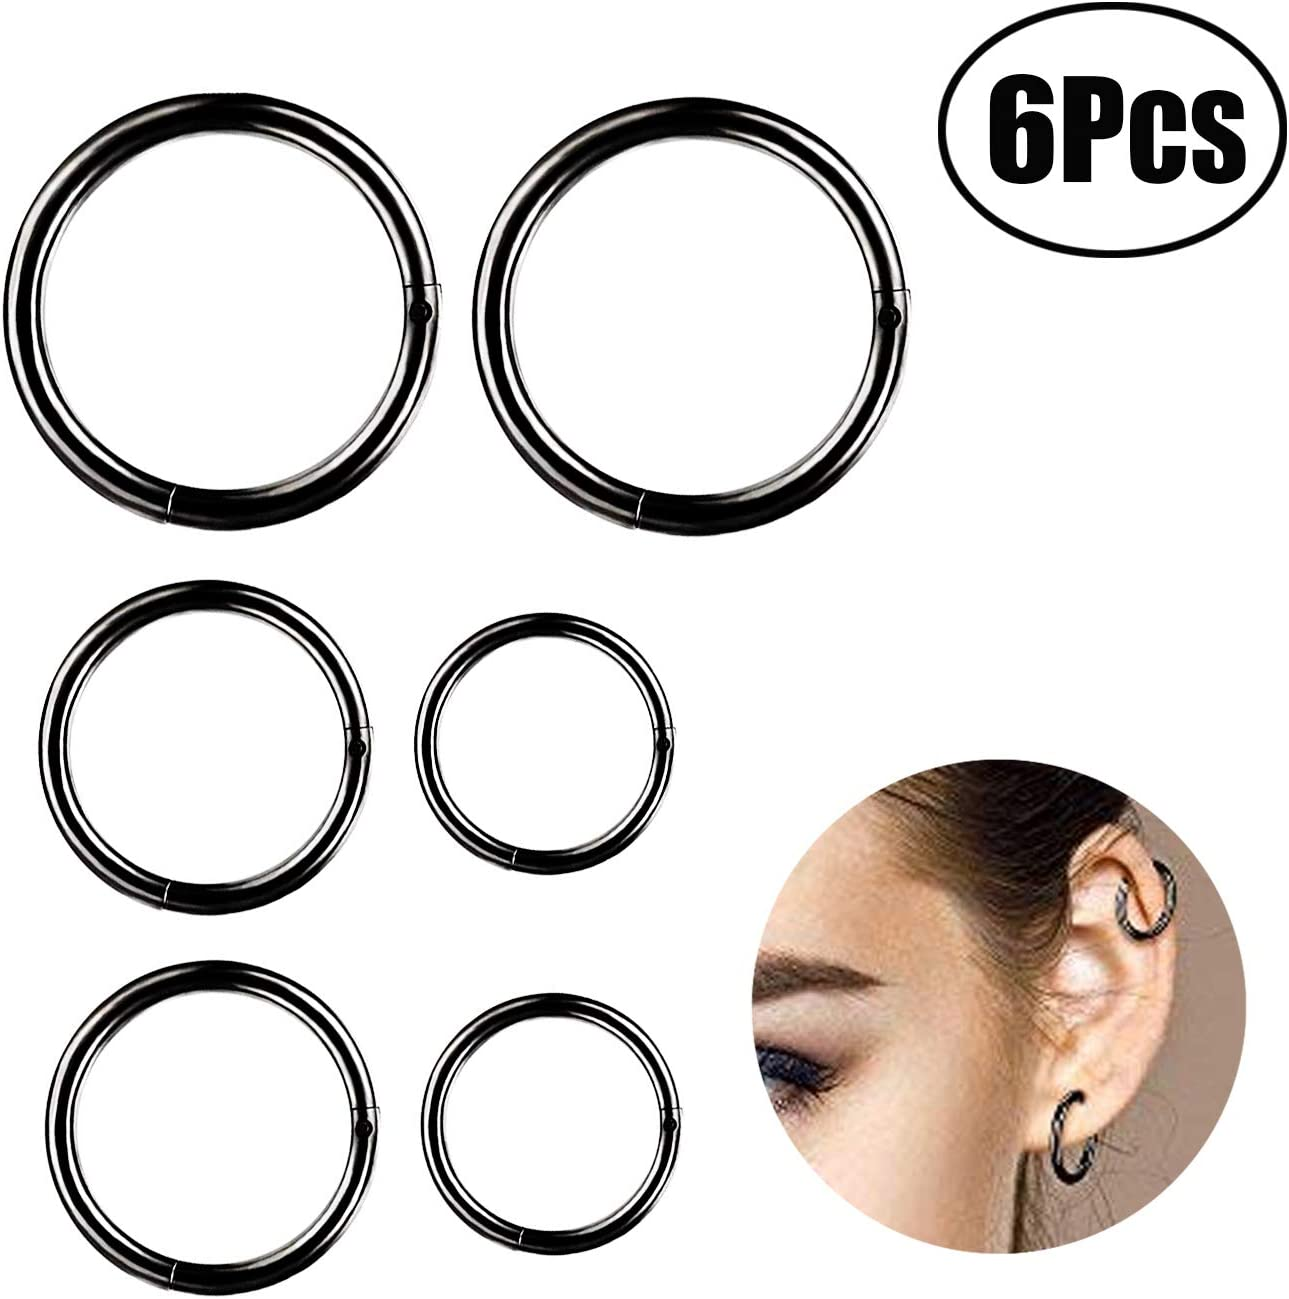 Leeq 6 Pieces 16 Gauge Stainless Steel Nose Ring Hoop Seamless